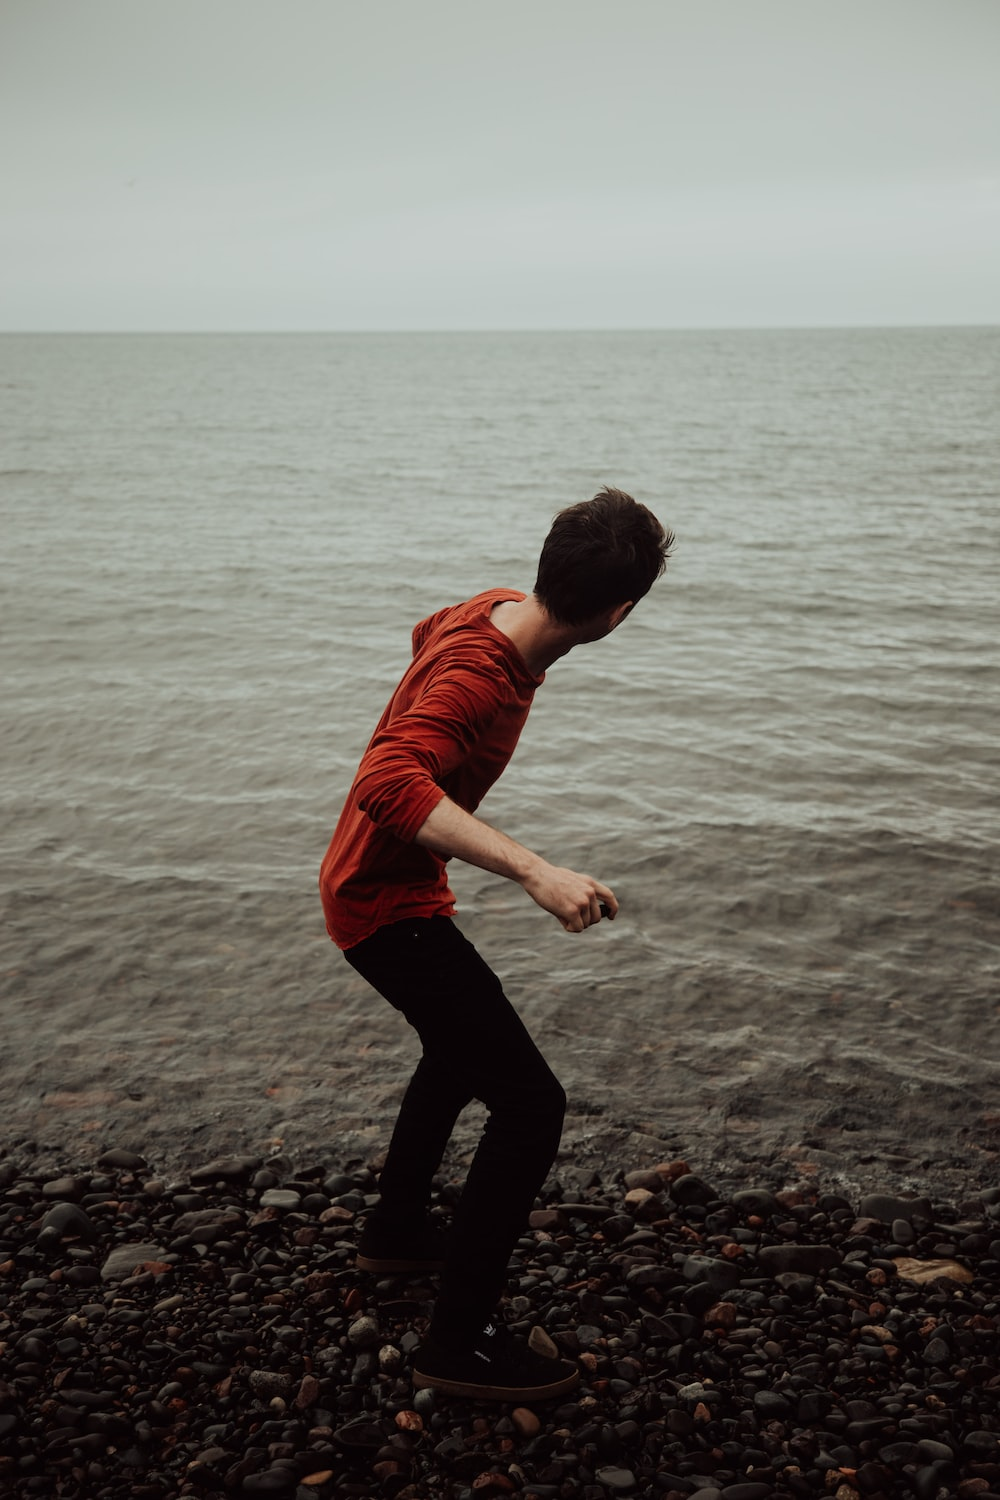 man wearing red shirt about to throw stone on ocean